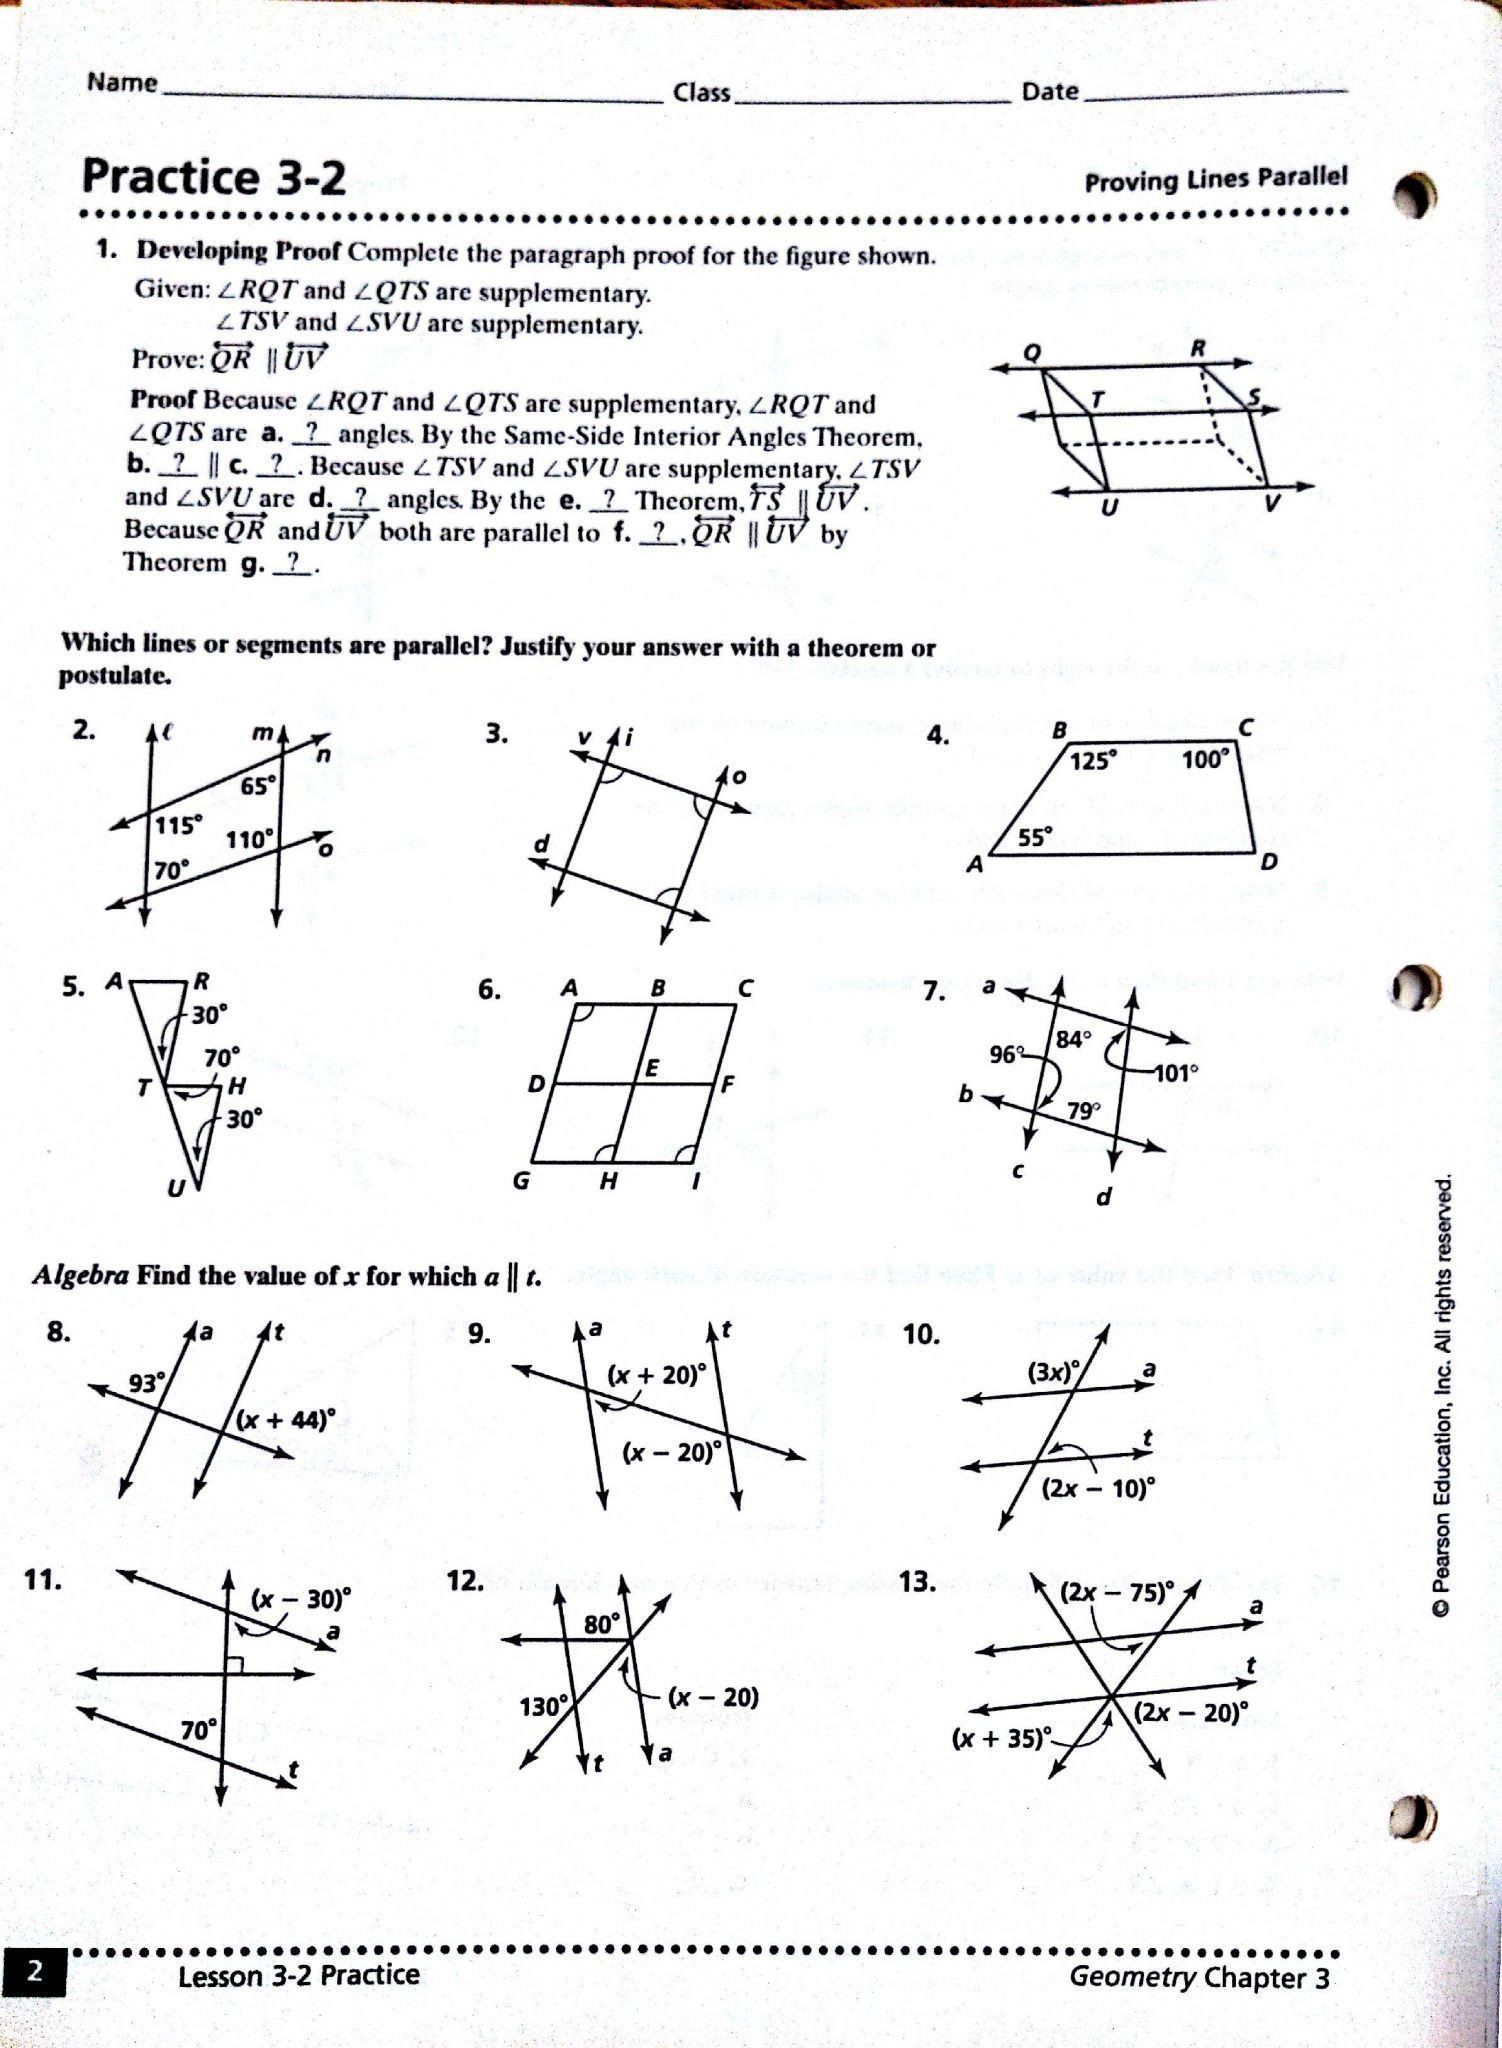 Angles In Transversal Worksheet Answers 8 Parallel Lines Worksheet Answers 2020 In 2020 Geometry Worksheets Algebra Worksheets Congruent Triangles Worksheet